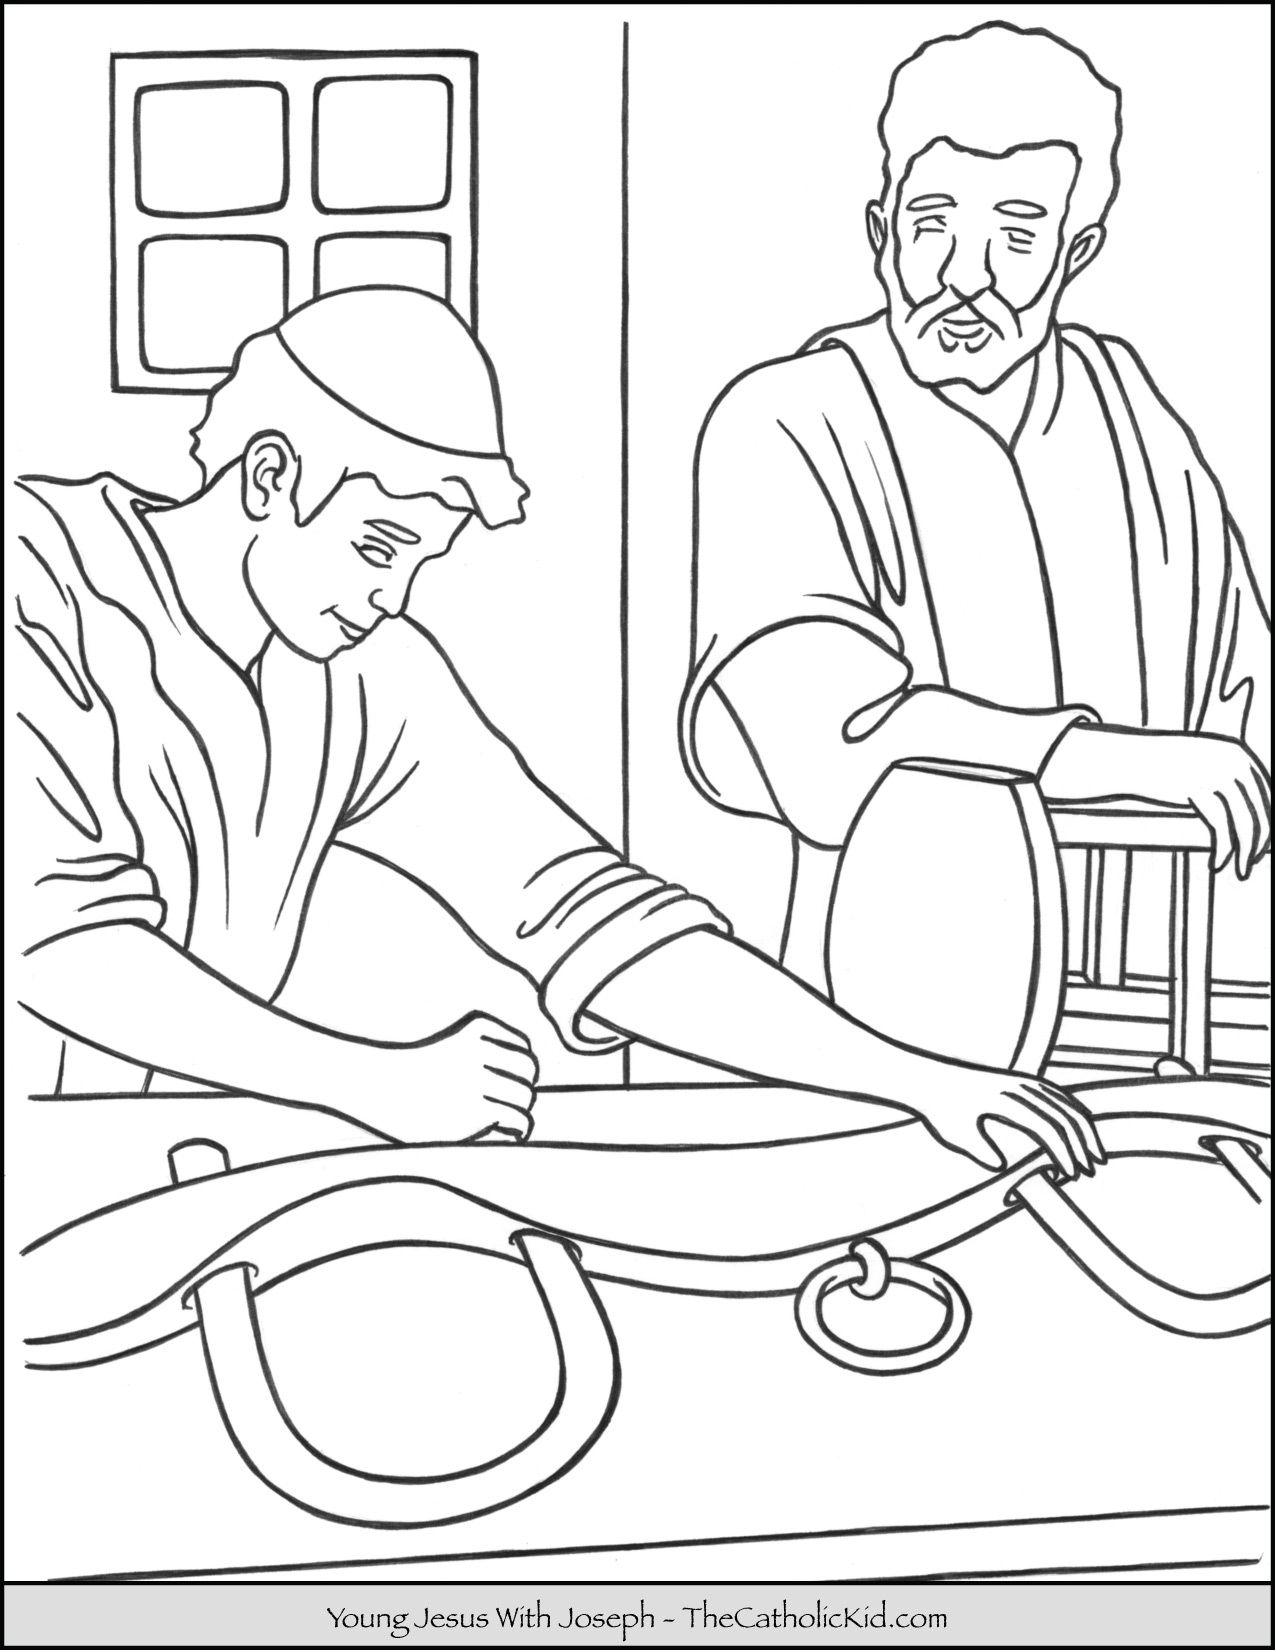 Young Jesus With Joseph Coloring Page Thecatholickid Com With